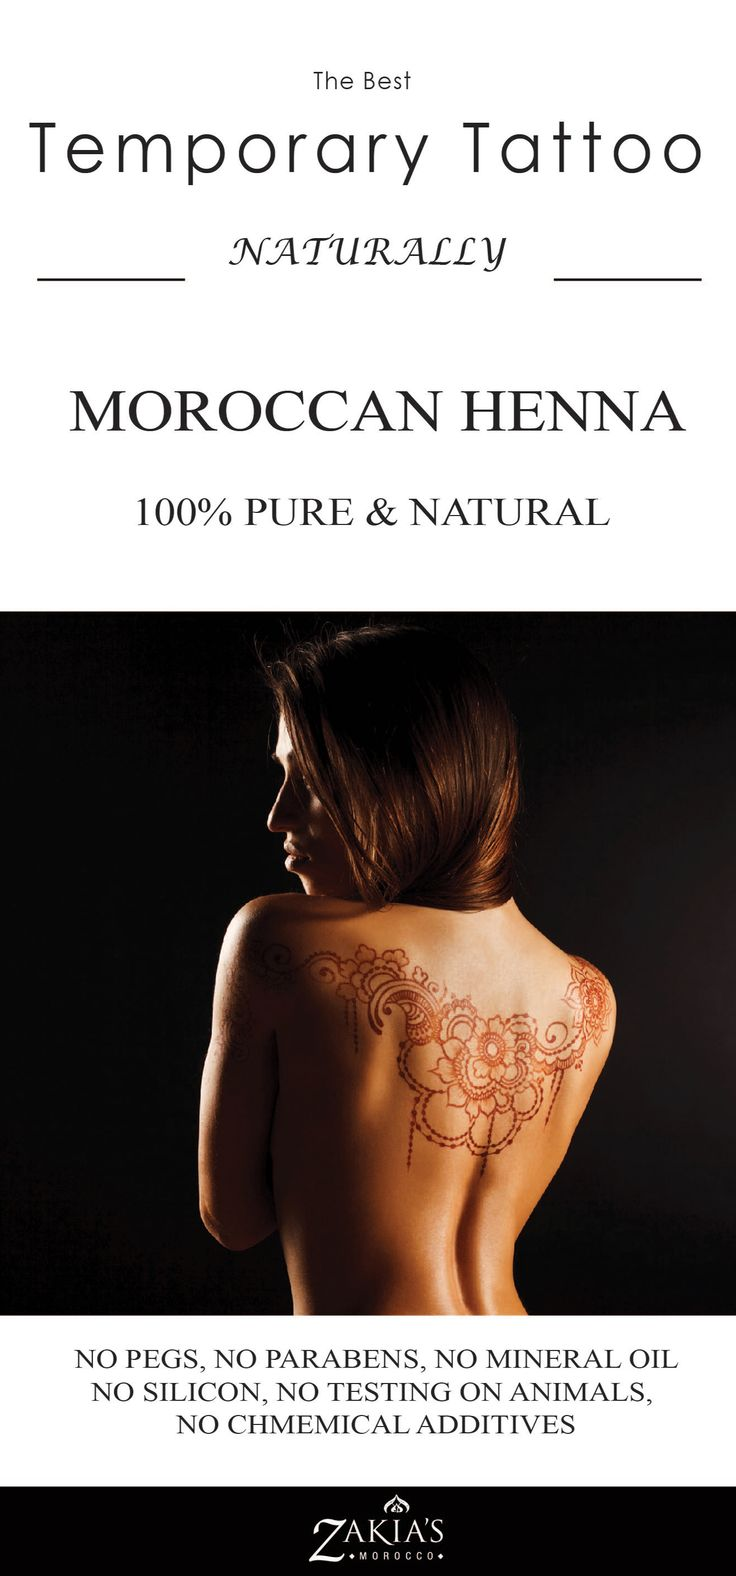 The very best natural Henna and temporary too!  You will love it for special occasions or just to have some fun.  Check it out at www.zakiasmorocco.com